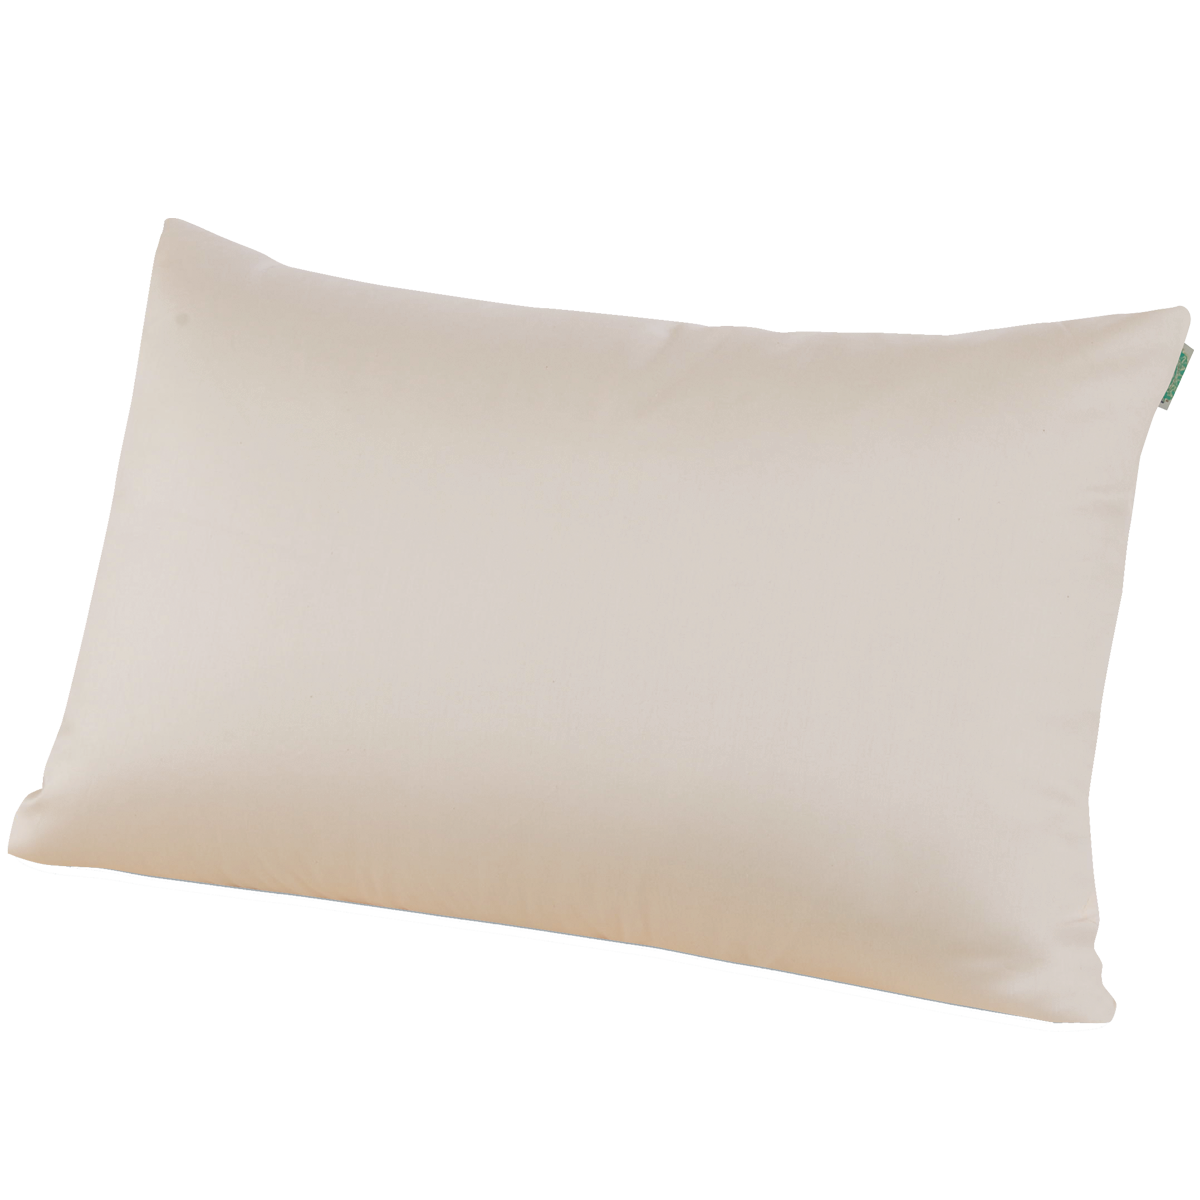 Pillow clipart fluffy pillow. Png image purepng free